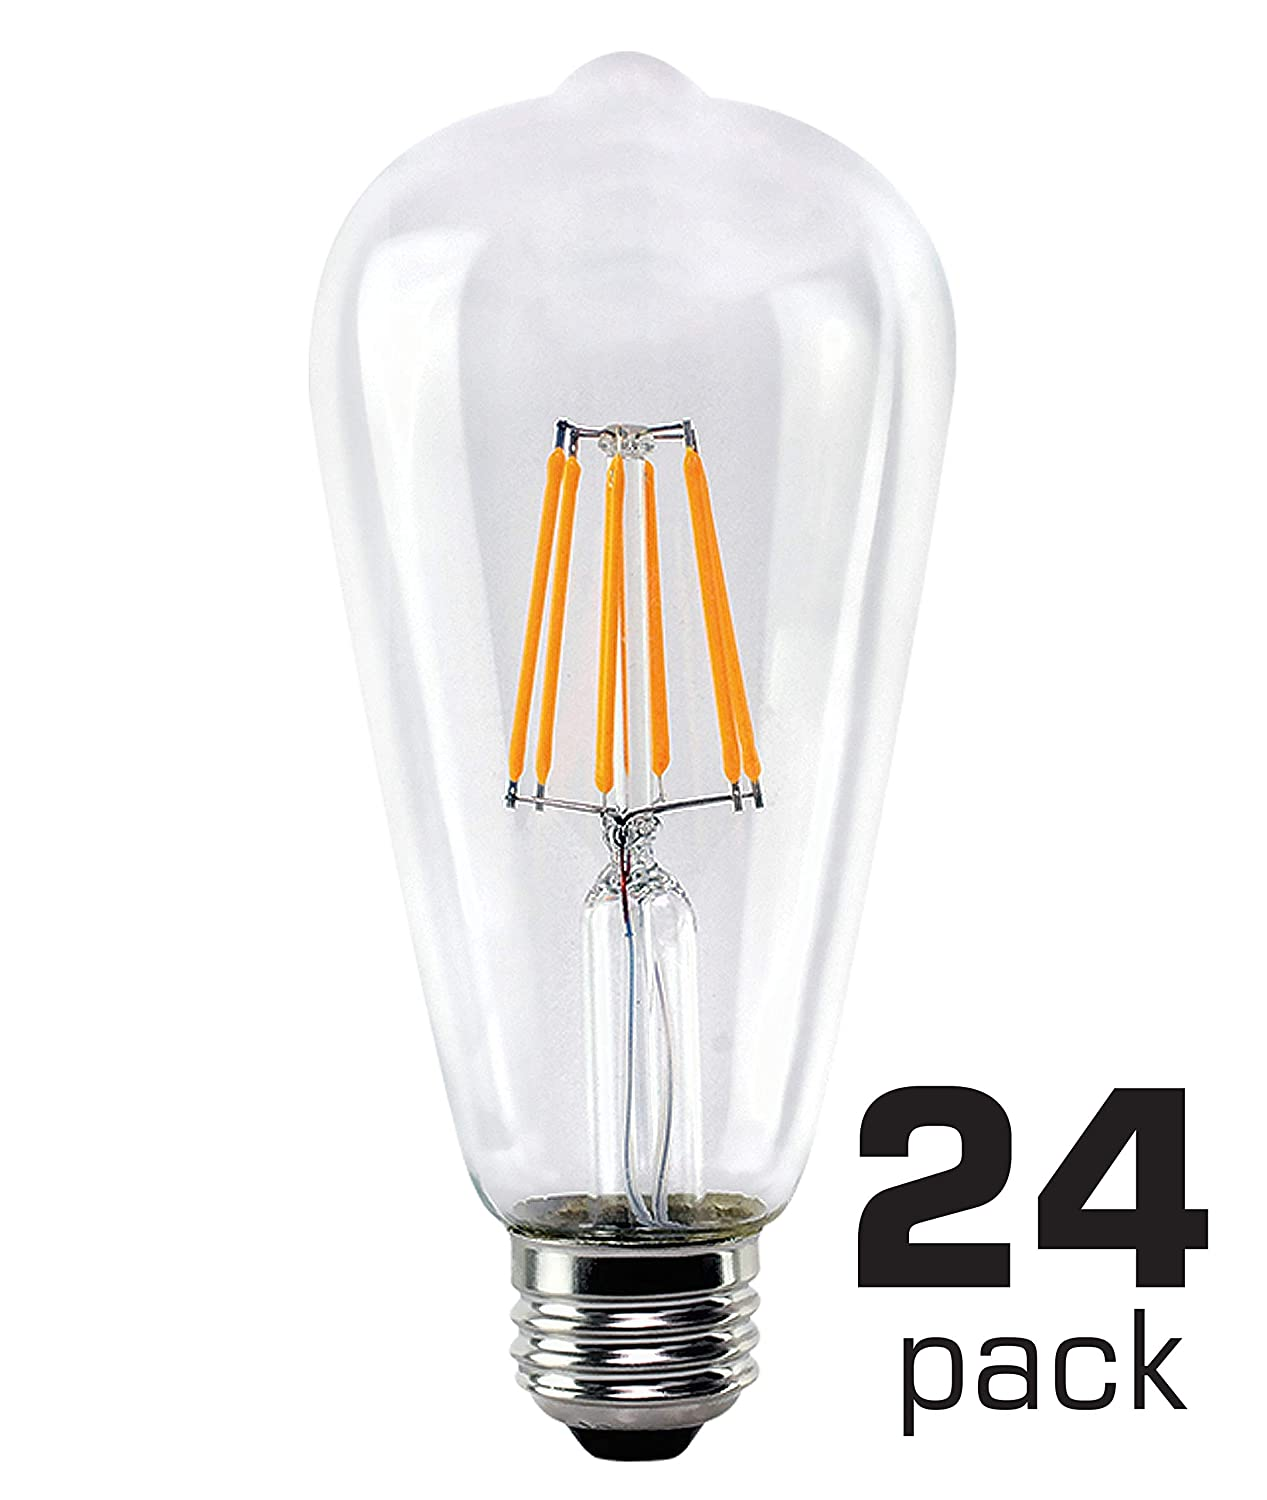 Soft Warm White OSTWIN Antique Vintage Thomas Edison Style Dimmable ST64 ST21 Clear Glass LED Filament Light Bulbs Teardrop 4W 6 Pack 40 Watt Equivalent UL Listed E26 Medium Base 400Lm 2200K